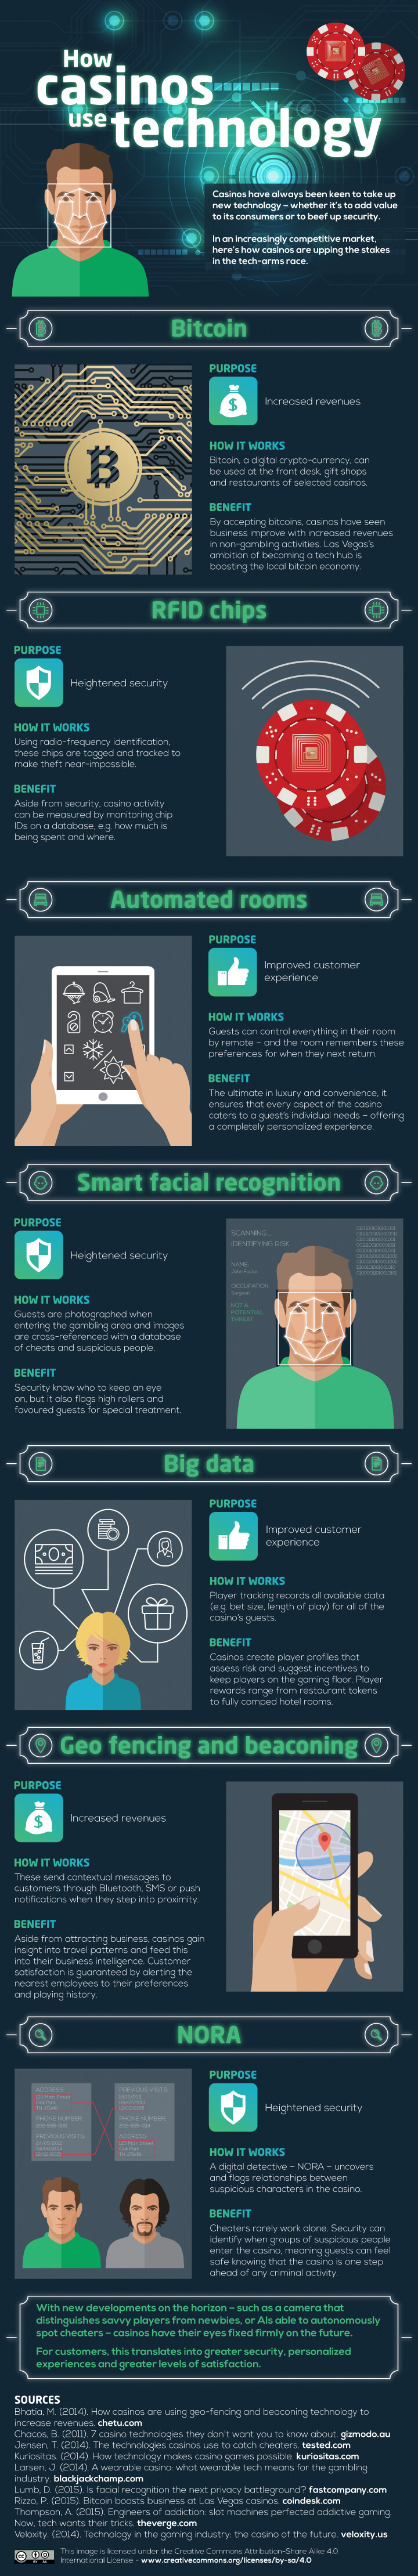 how-casinos-use-technology-infographic